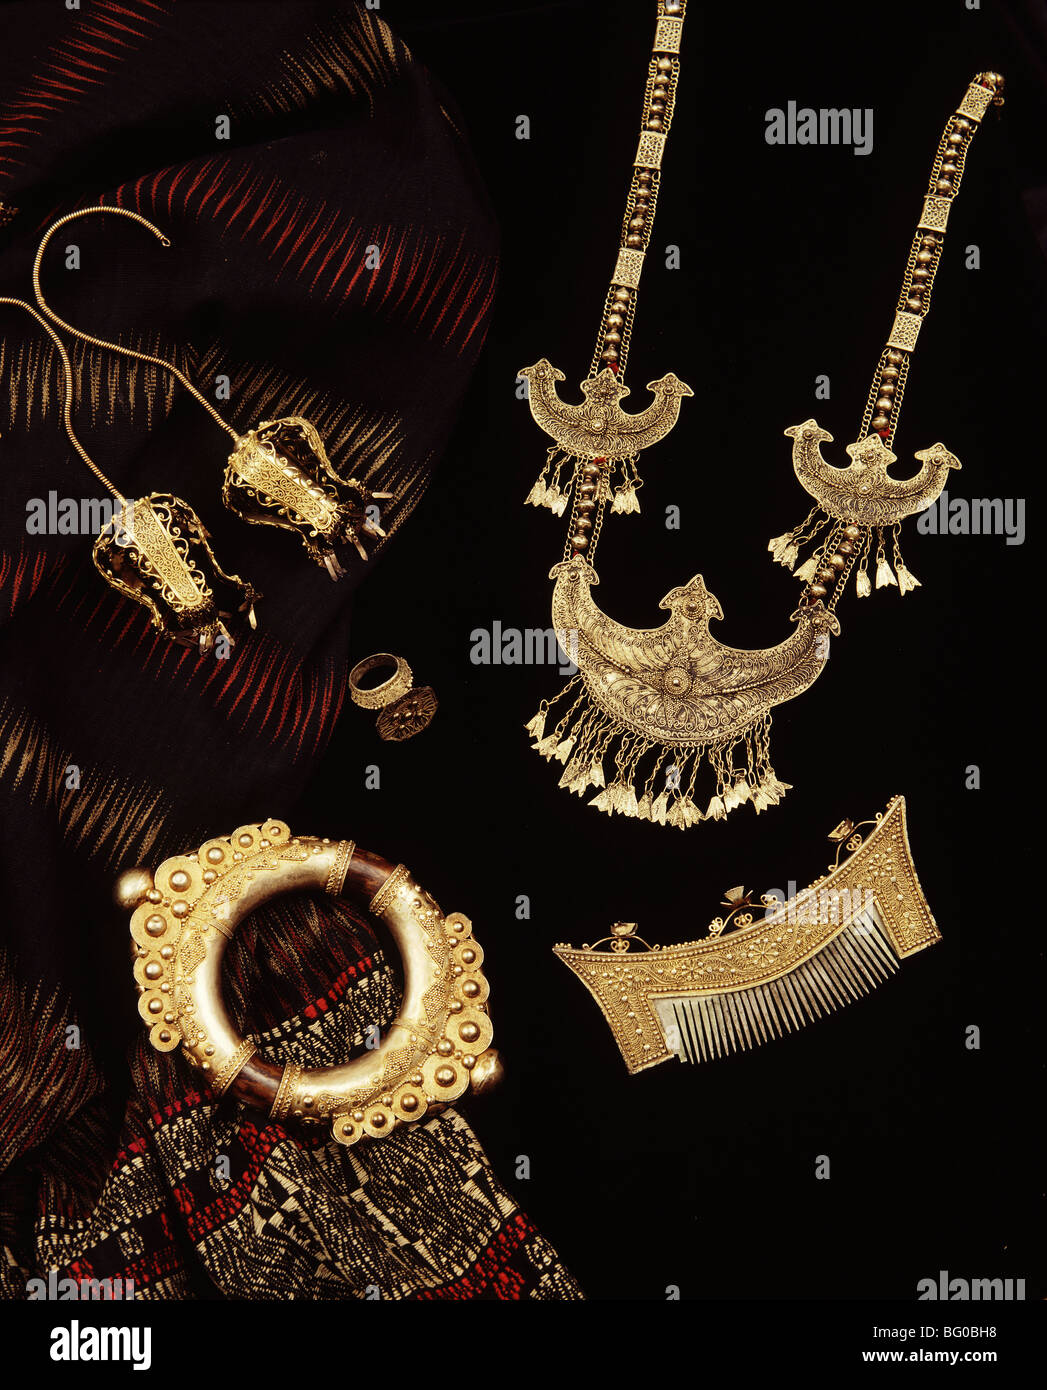 Jewellery of Batak tribe from the Regent Collection, Sumatra, Indonesia, Southeast Asia, Asia - Stock Image